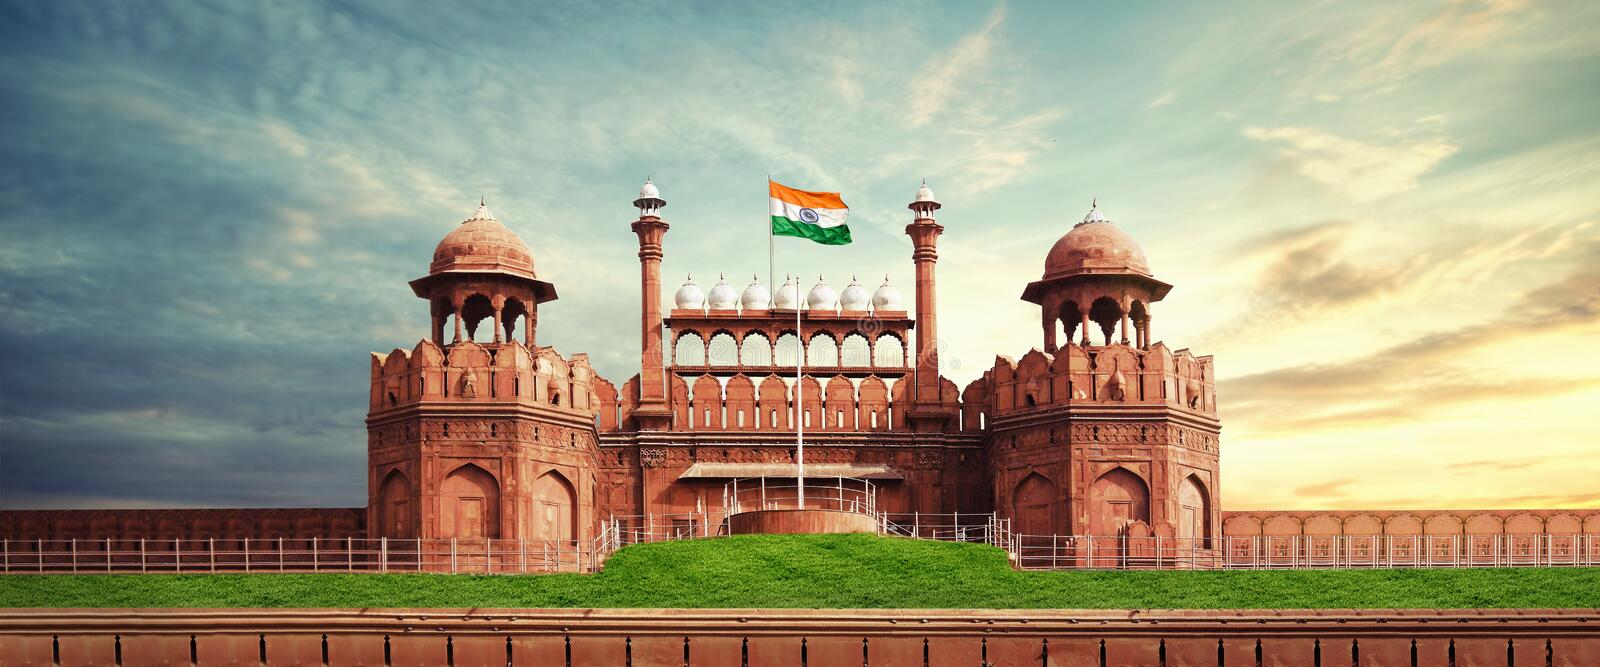 Red Fort delhi india stock image